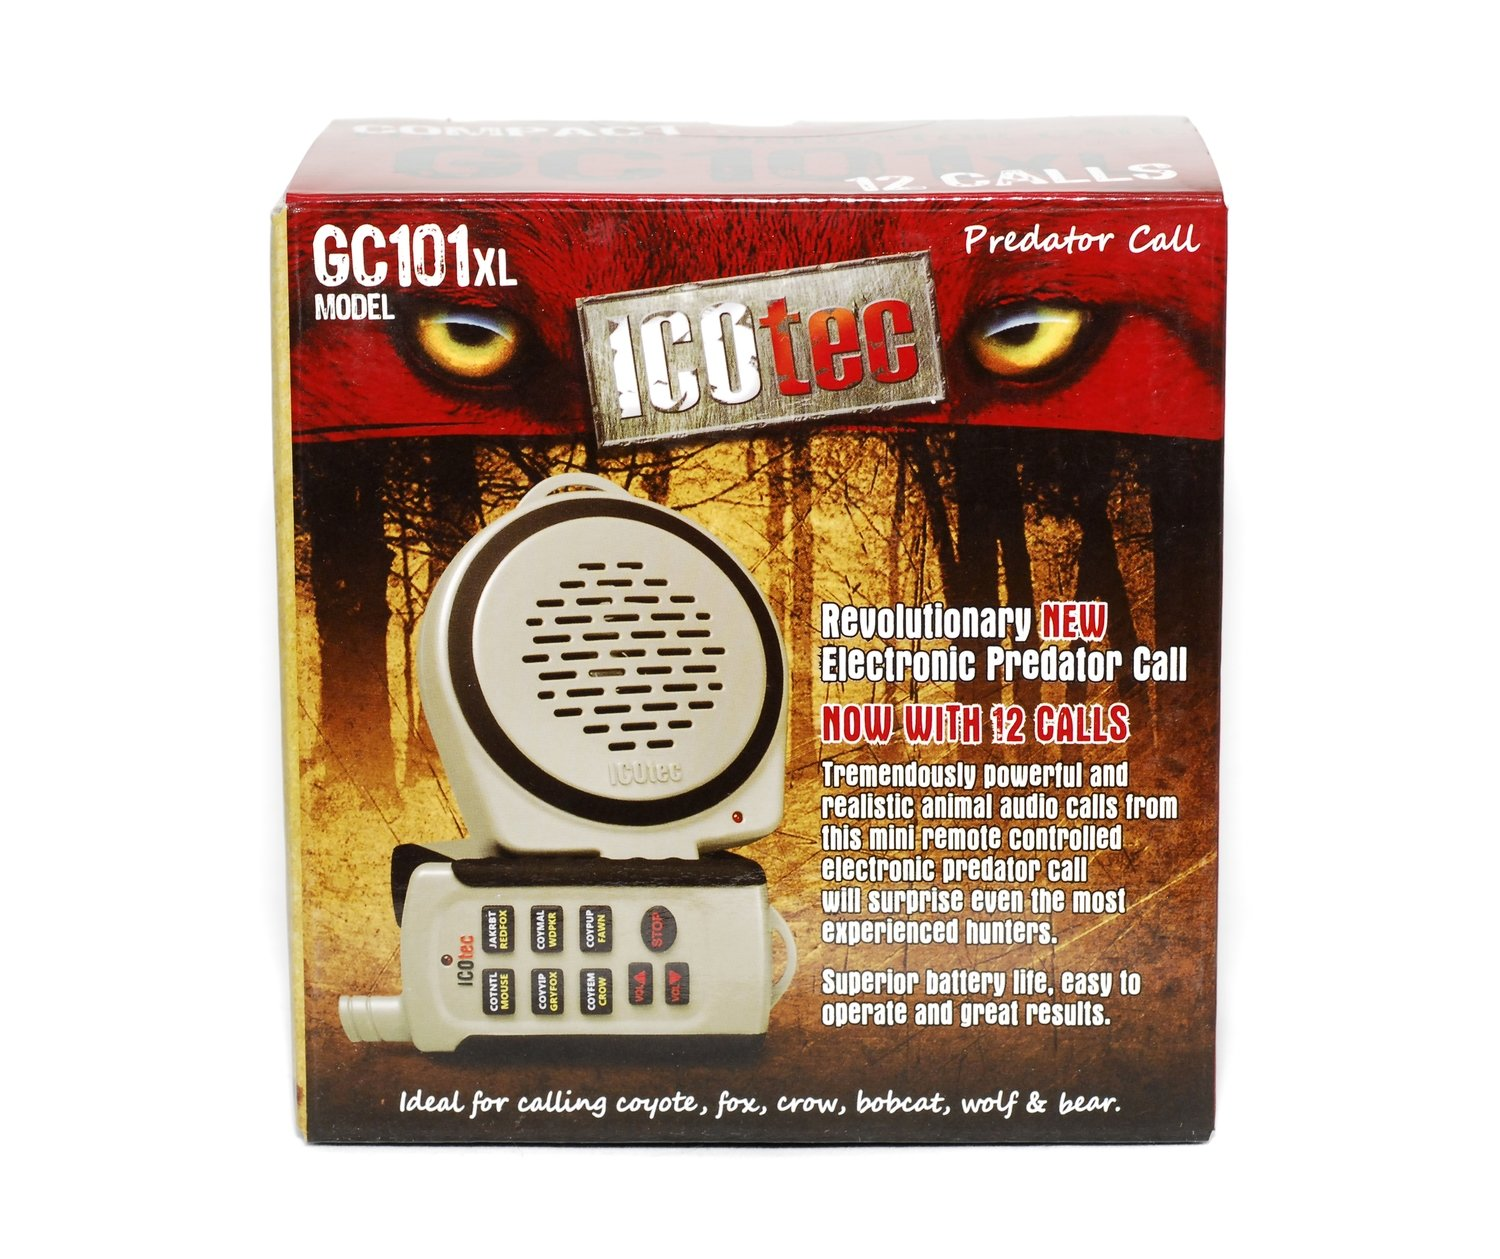 ICOtec GC101XL - Compact Electronic Predator Game Call autherized dealer